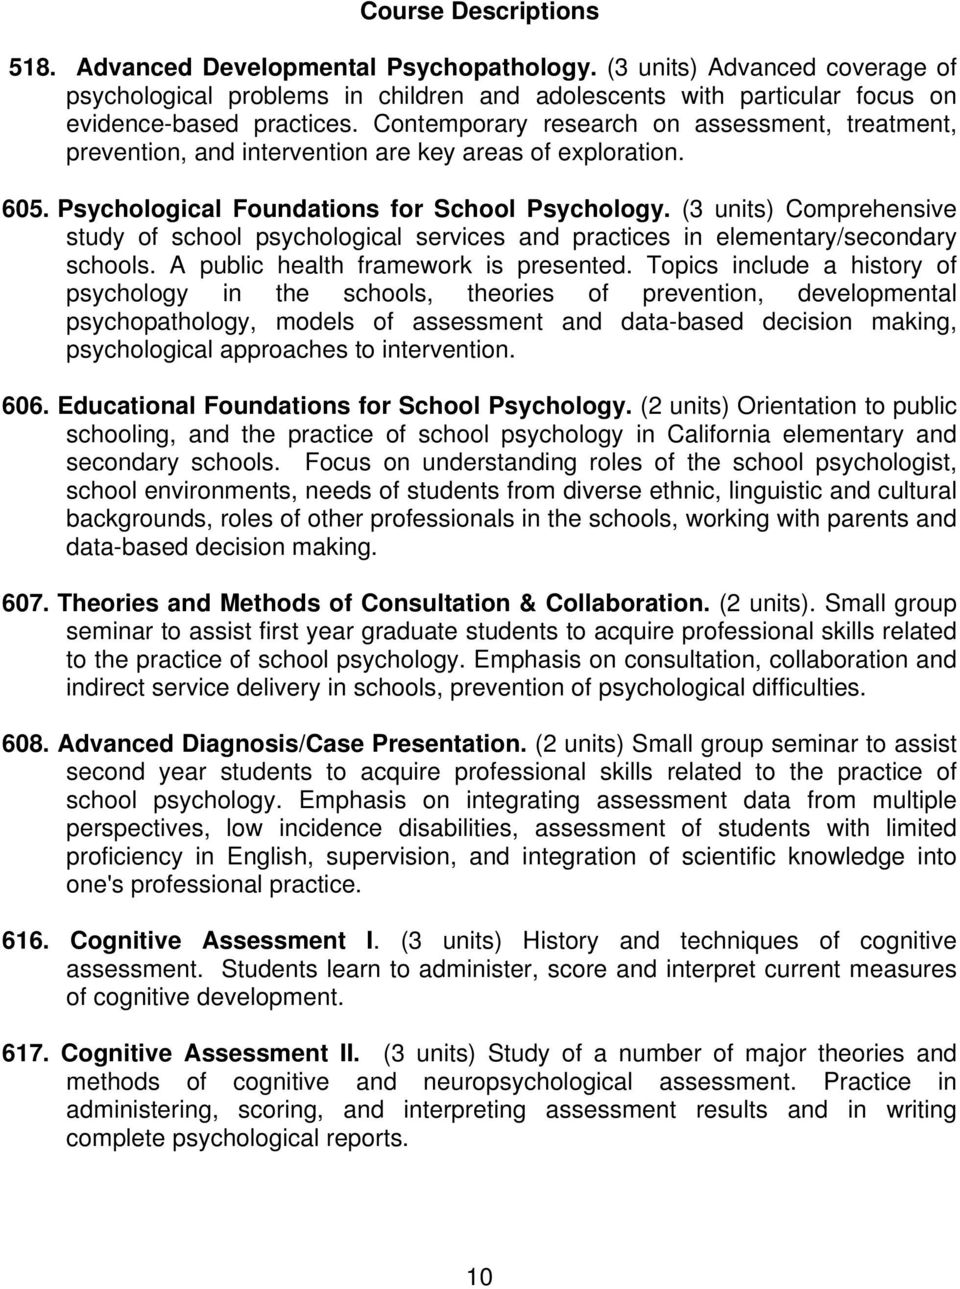 (3 units) Comprehensive study of school psychological services and practices in elementary/secondary schools. A public health framework is presented.